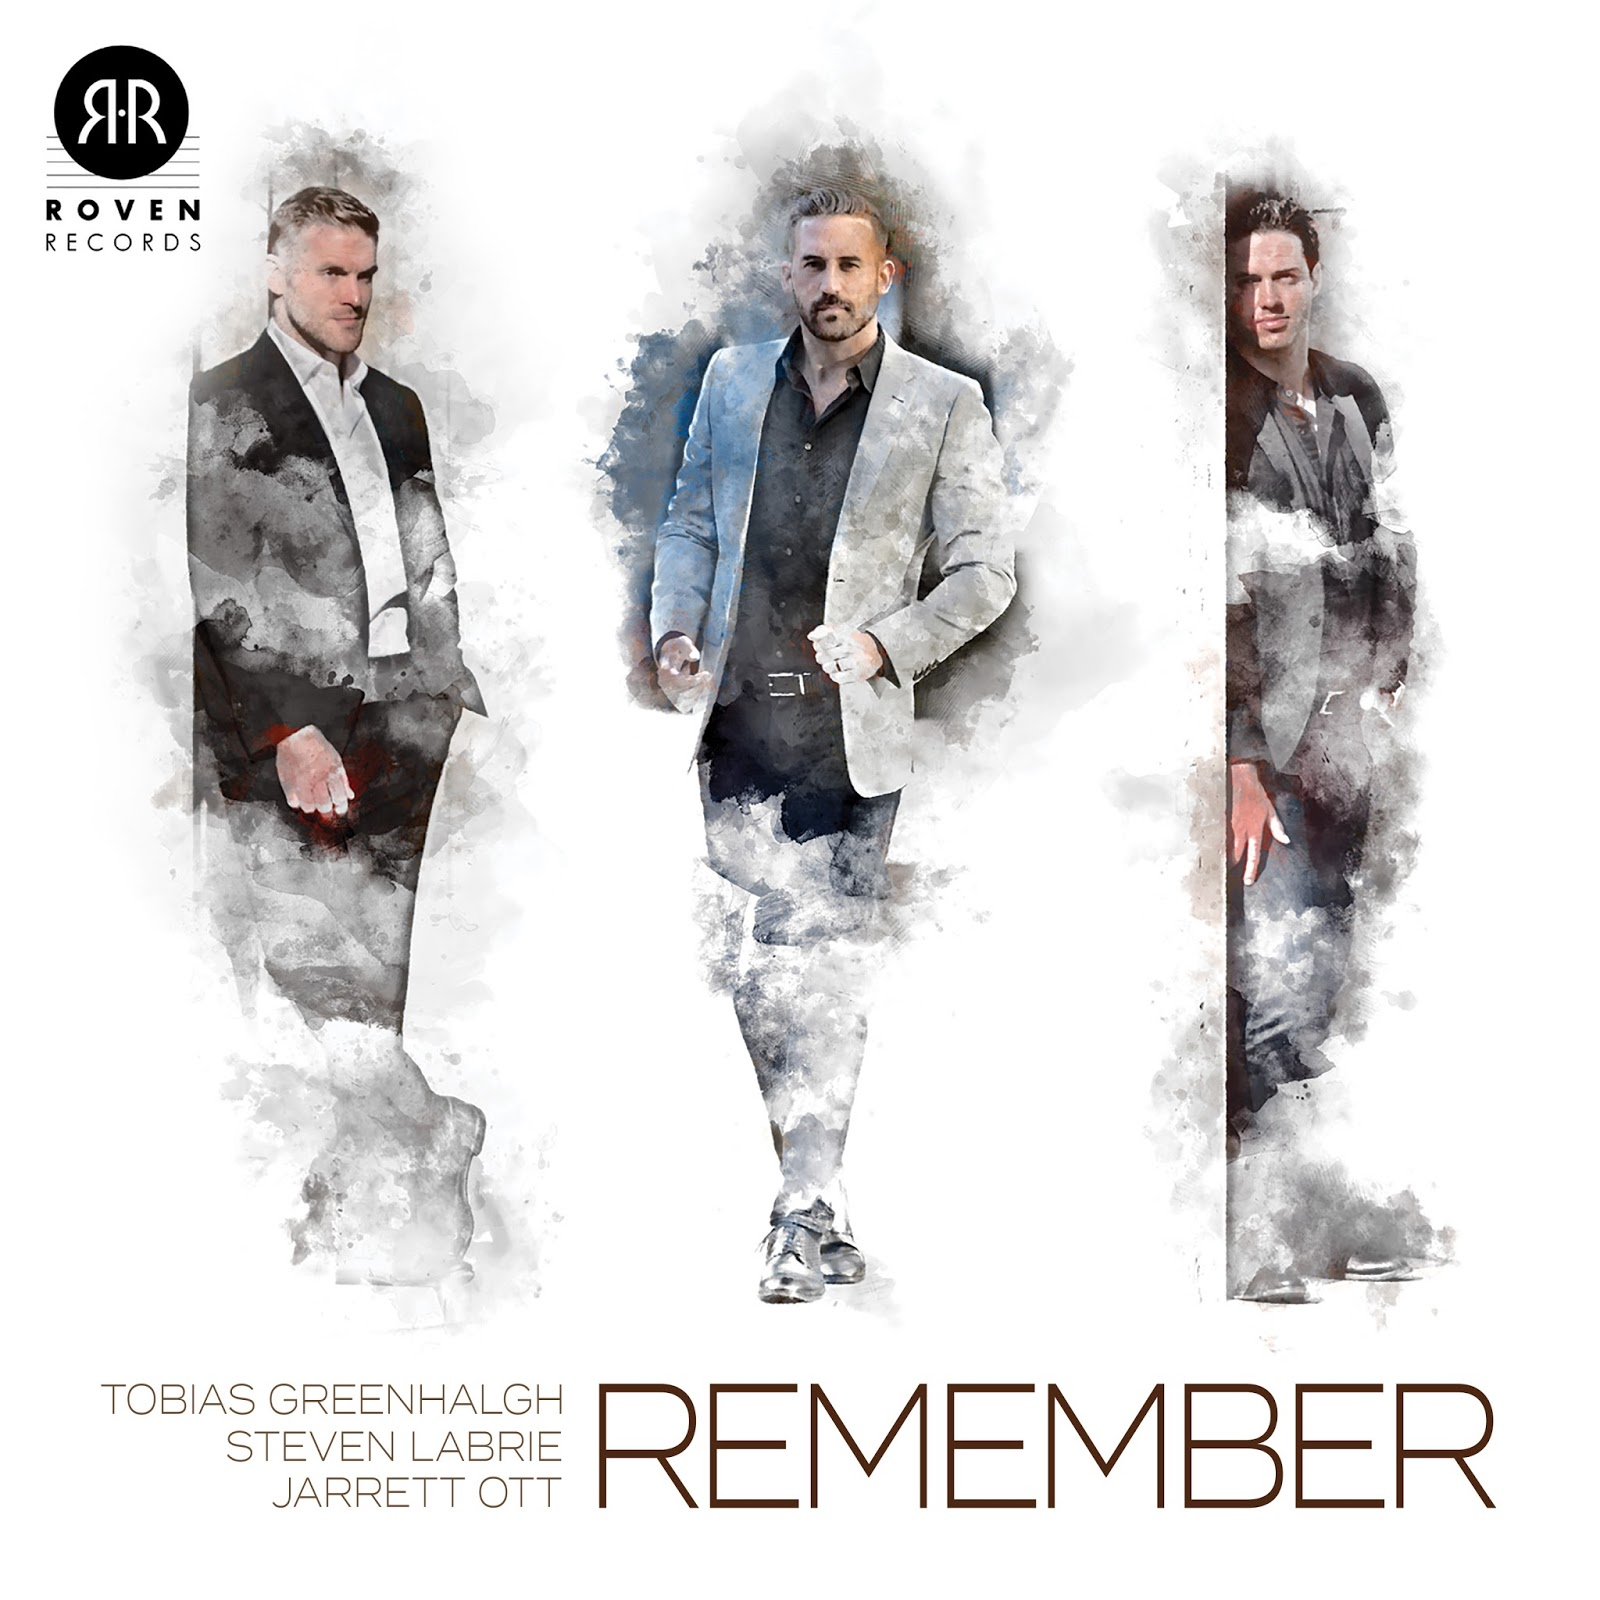 IN REVIEW: Benjamin C.S. Boyle, Jake Heggie, Jennifer Higdon, Lori Laitman, & Glen Roven - REMEMBER (Roven Records RR051218)